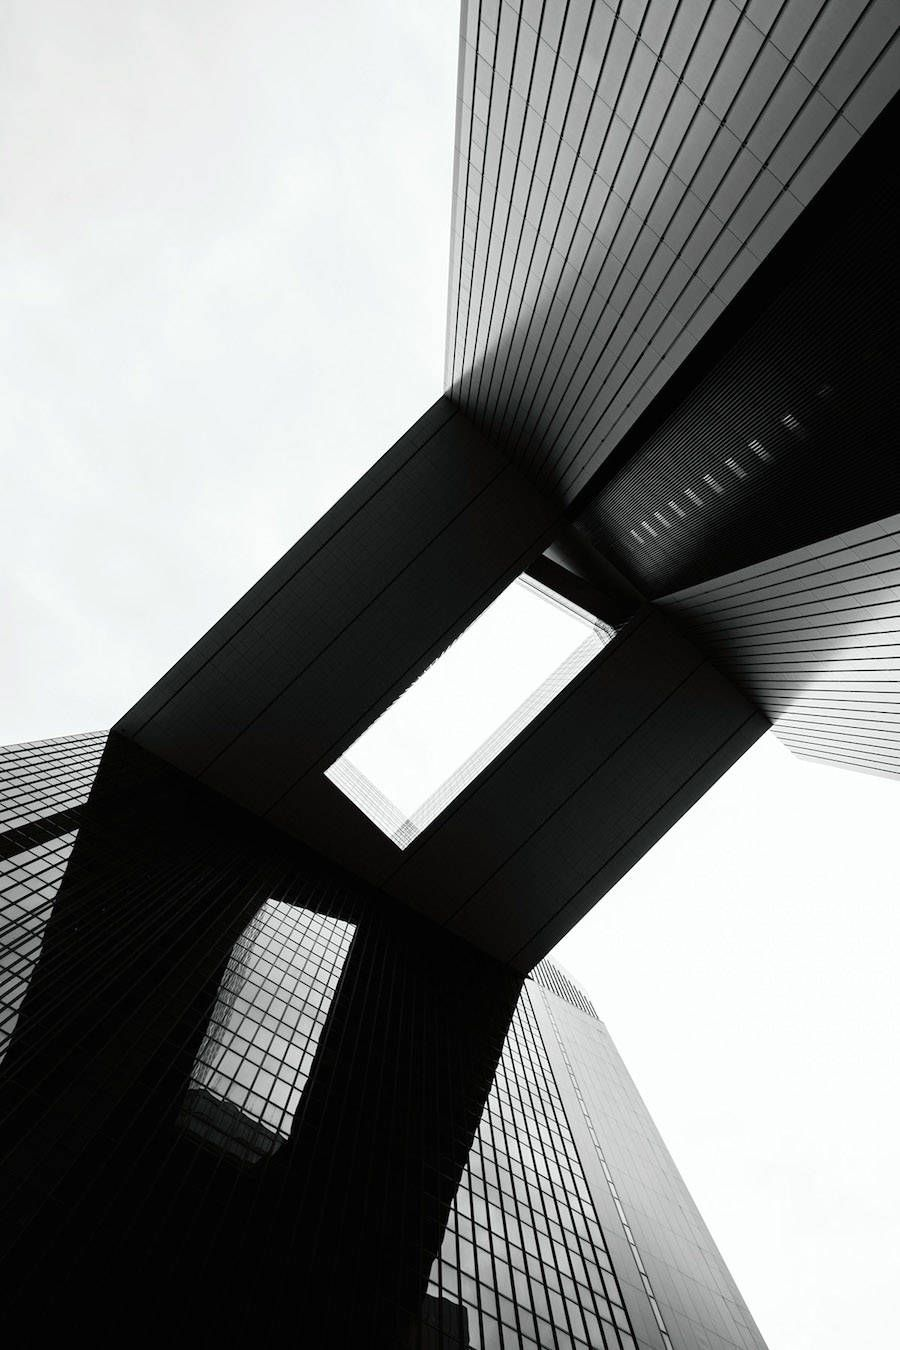 Visions of the Future // Uncluttered Black and White Architecture Photography – Fubiz Media